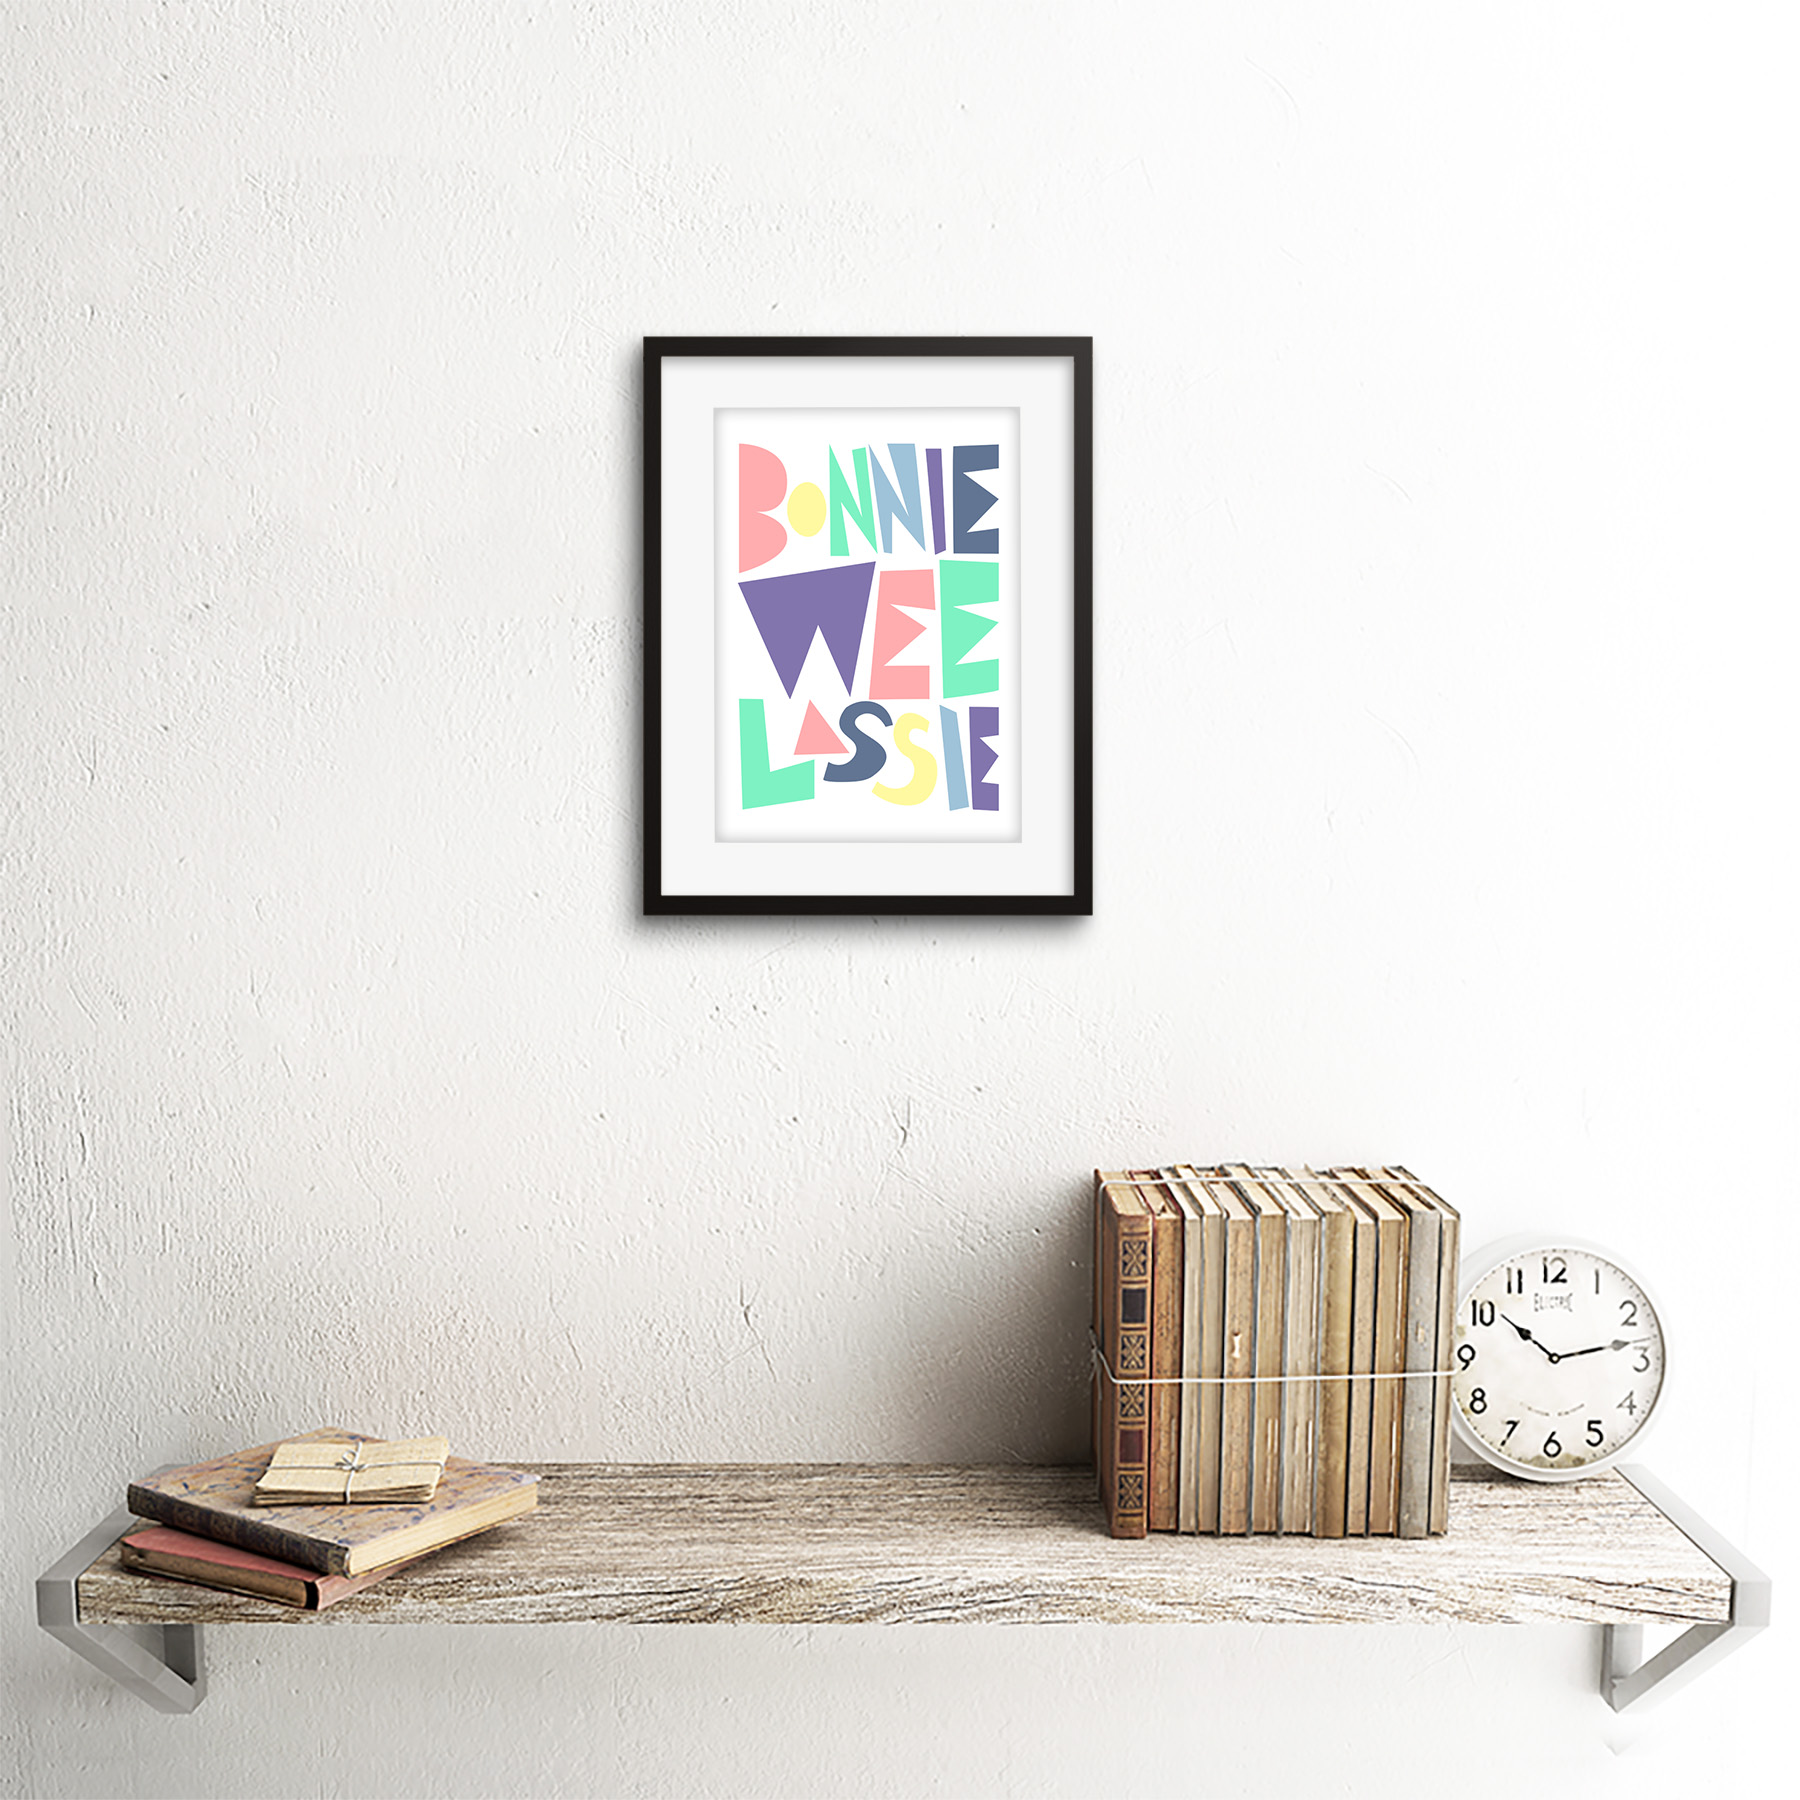 thumbnail 3 - Bonnie Wee LASSIE New Baby Girl Scottish Colourful Framed Wall Art Print